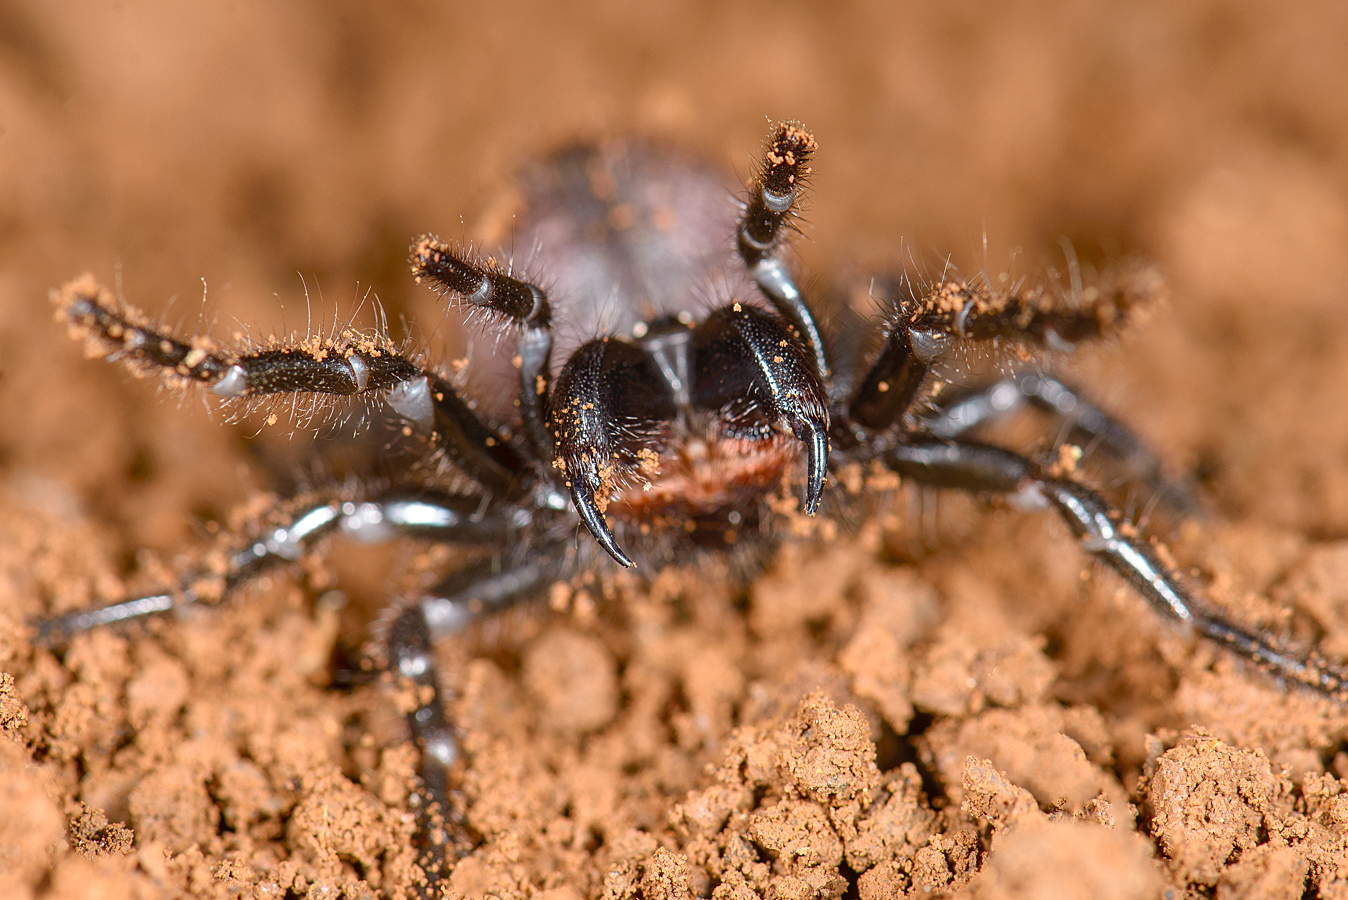 A new study has found that two families of extremely venomous Australian spiders are more closely related than previously thought.